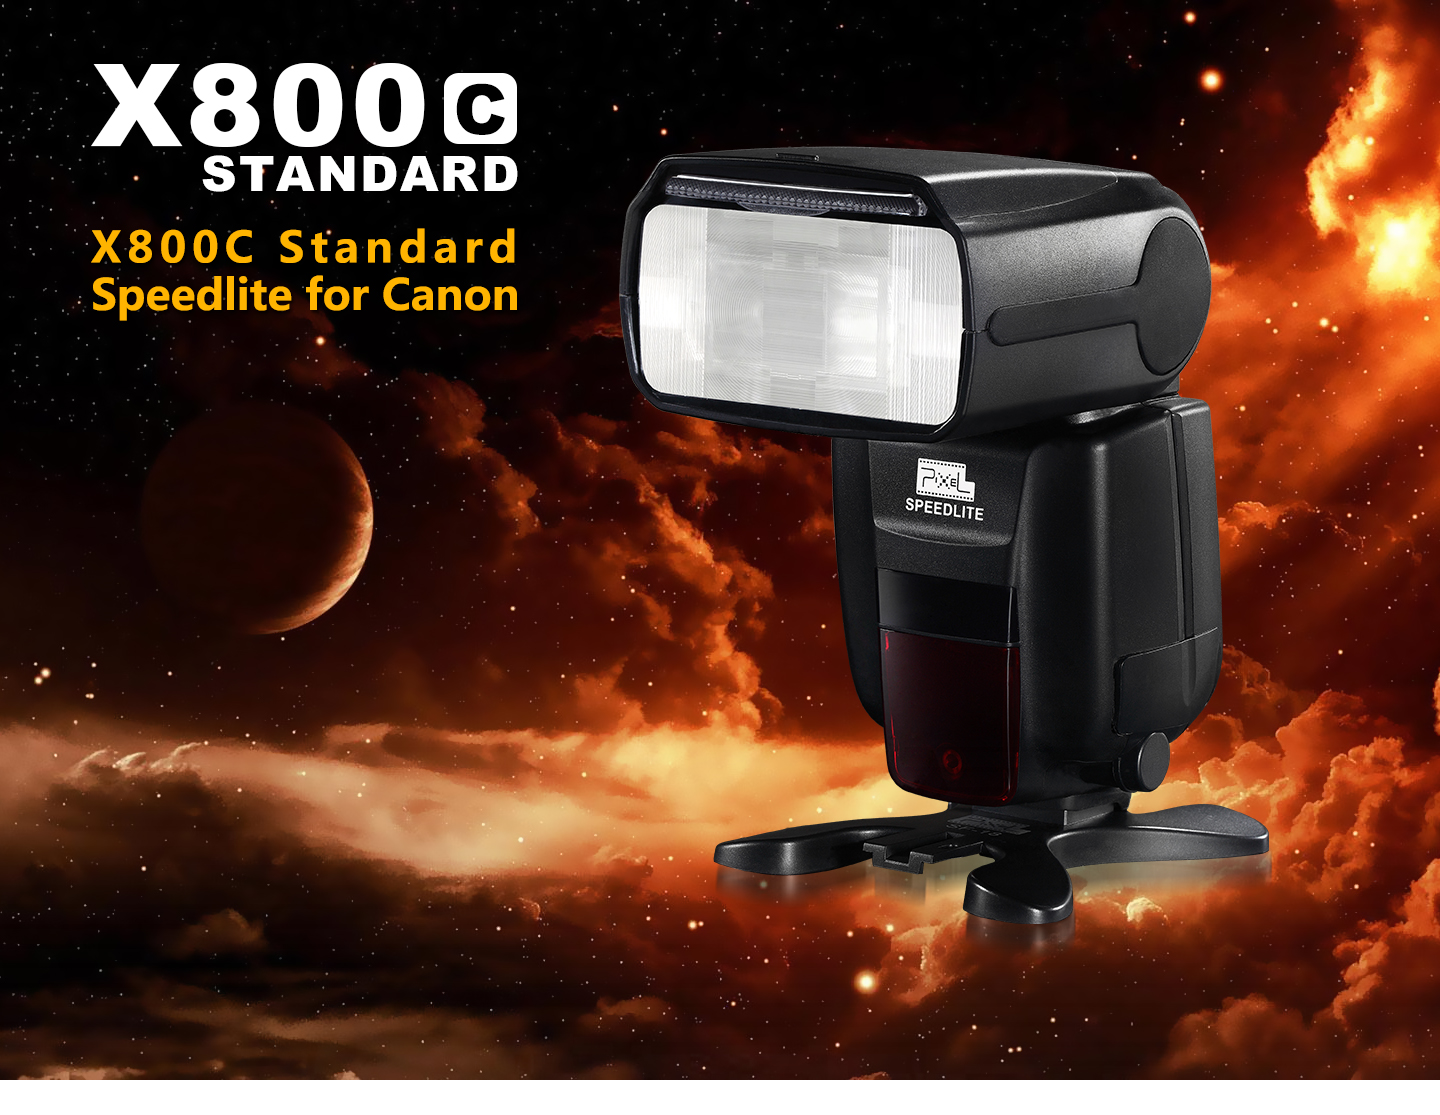 X800C Standard Speedlite for Canon